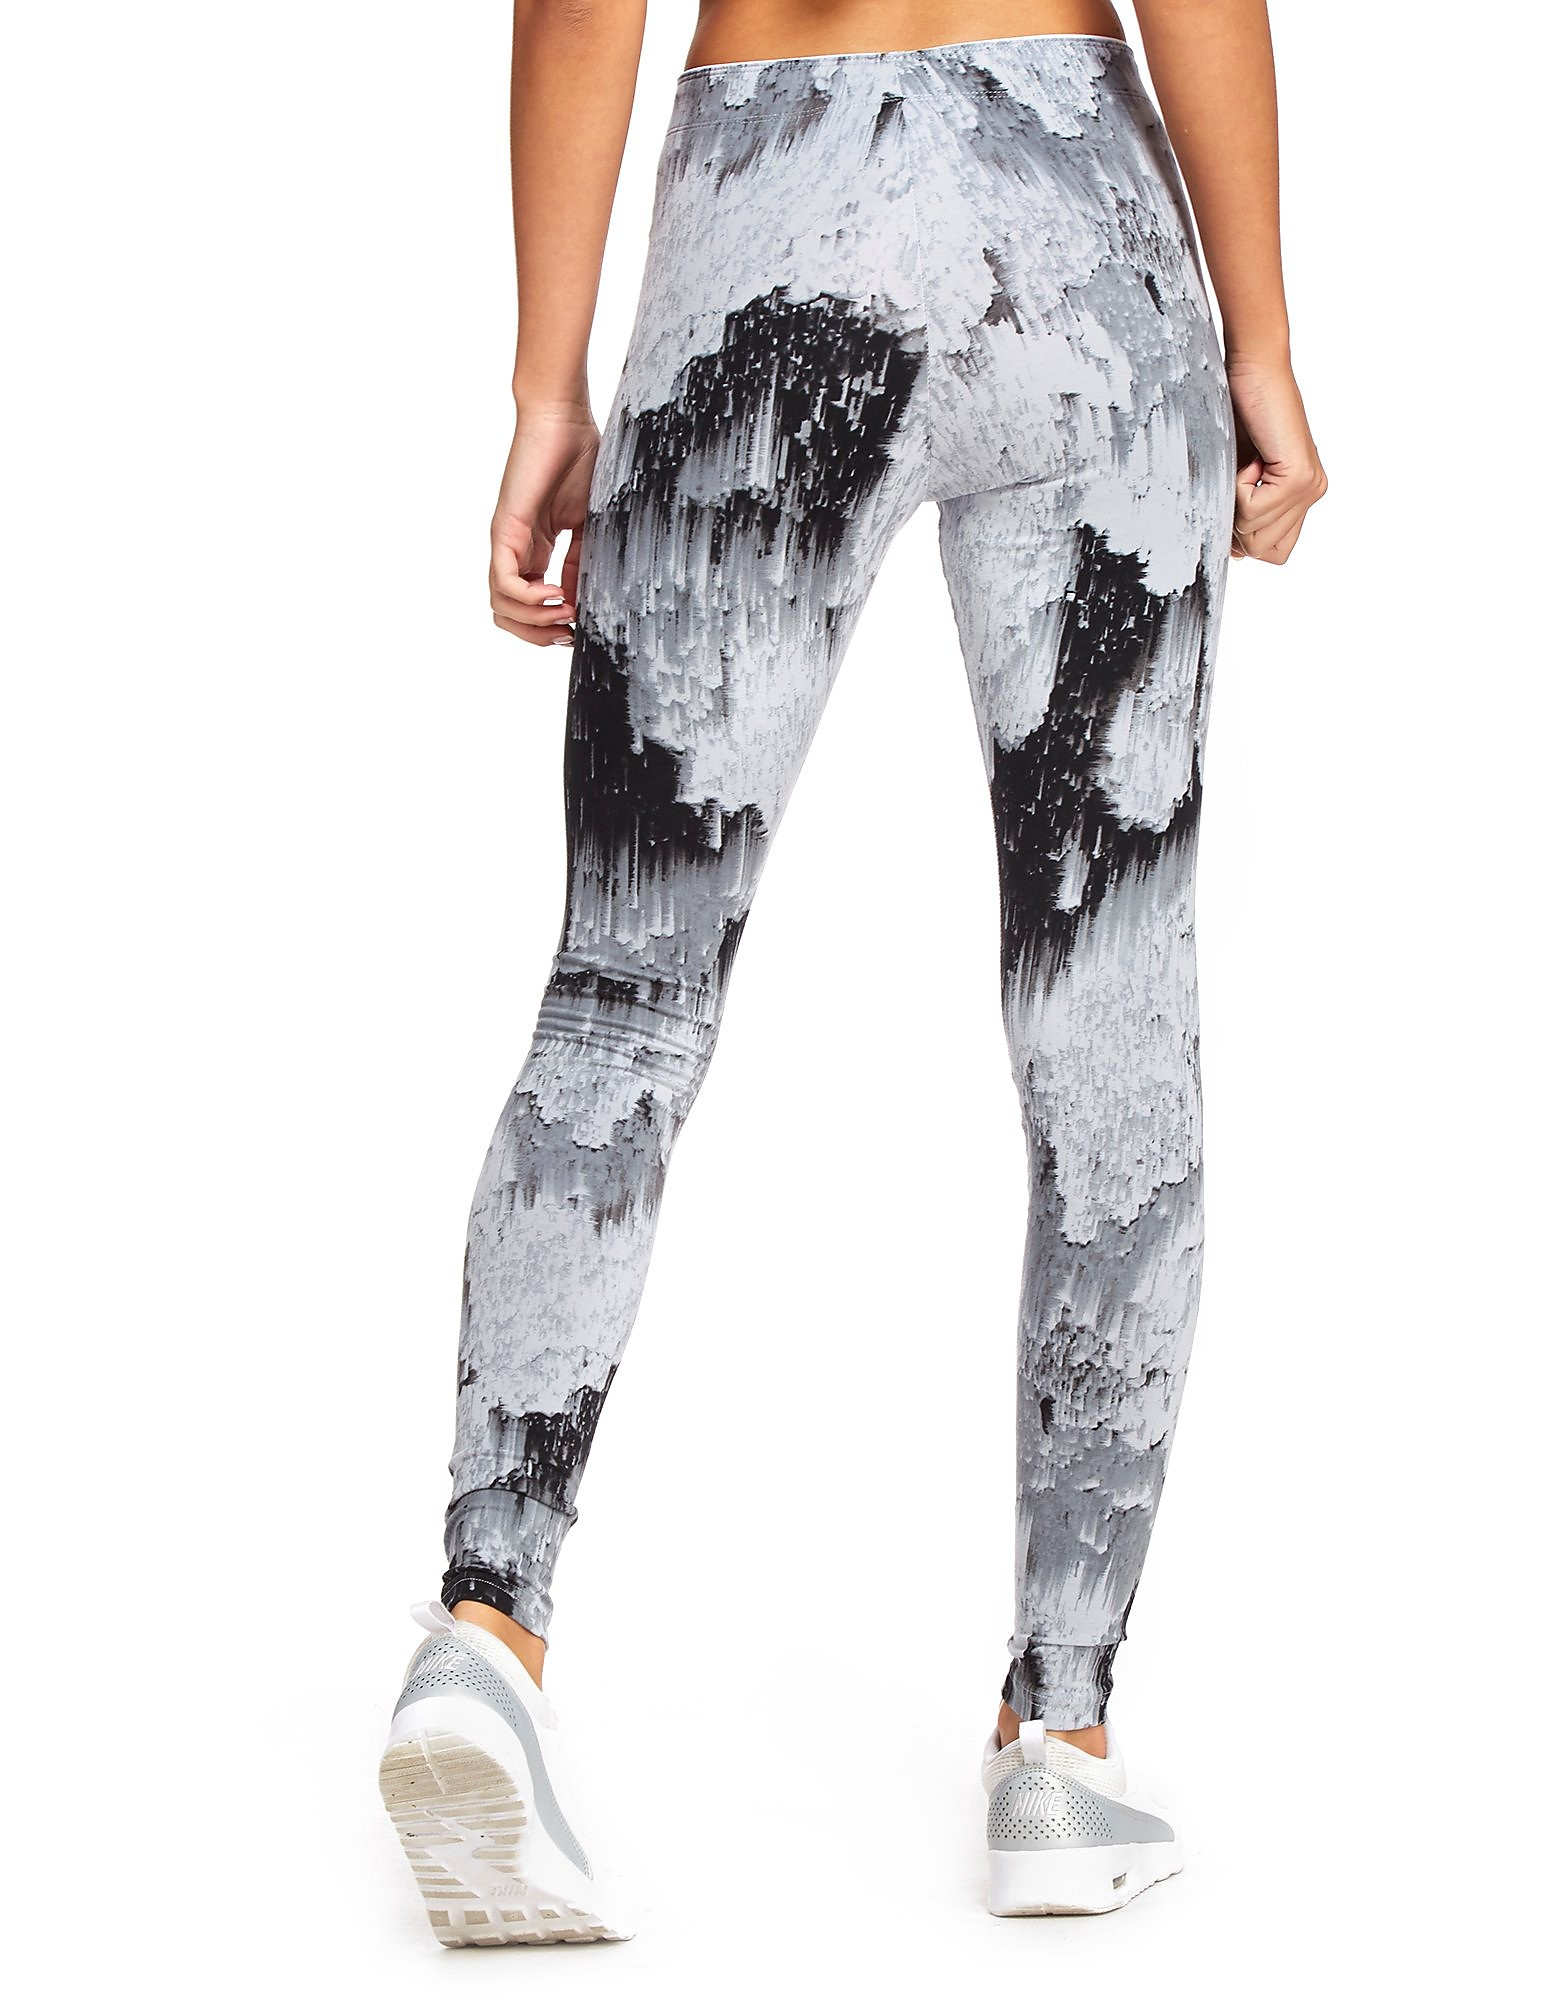 Nike Northern Lights Leggings